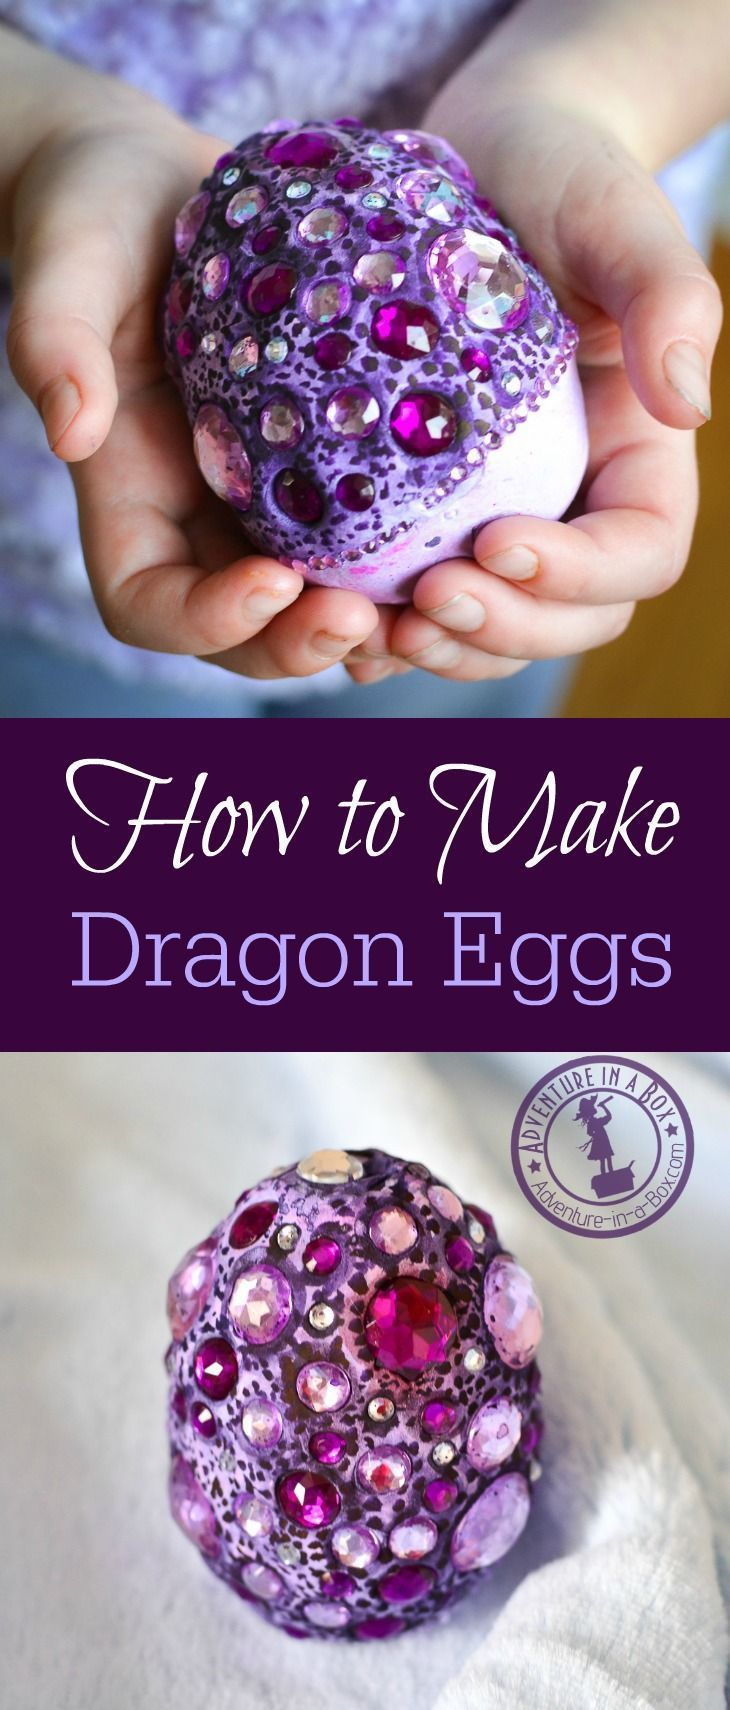 How to Make Fantasy Dragon Eggs | Adventure in a Box